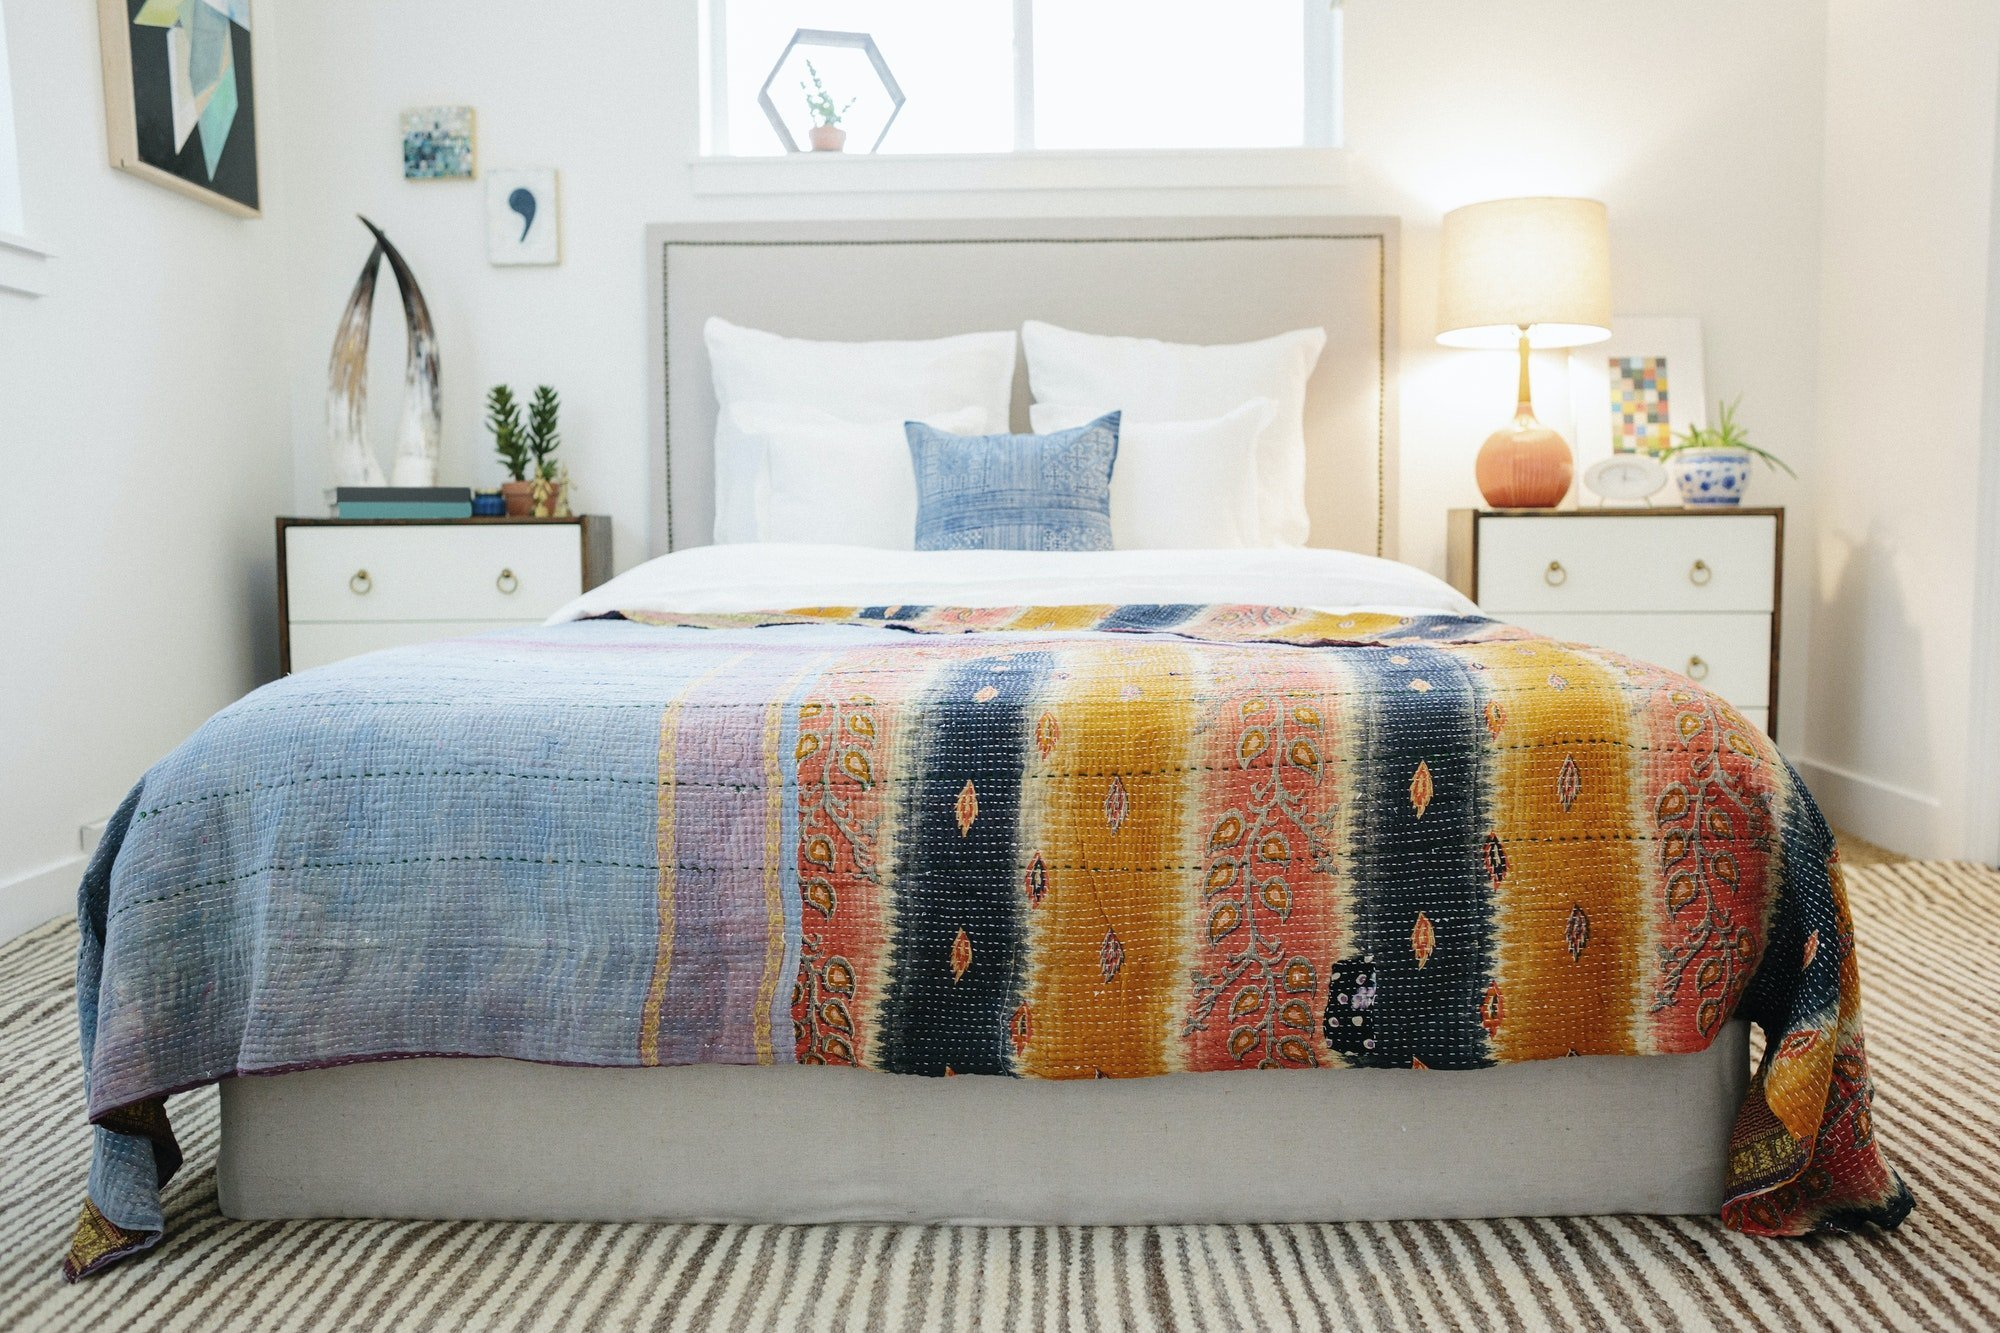 A bedroom with a vivid striped patterned bedspread.